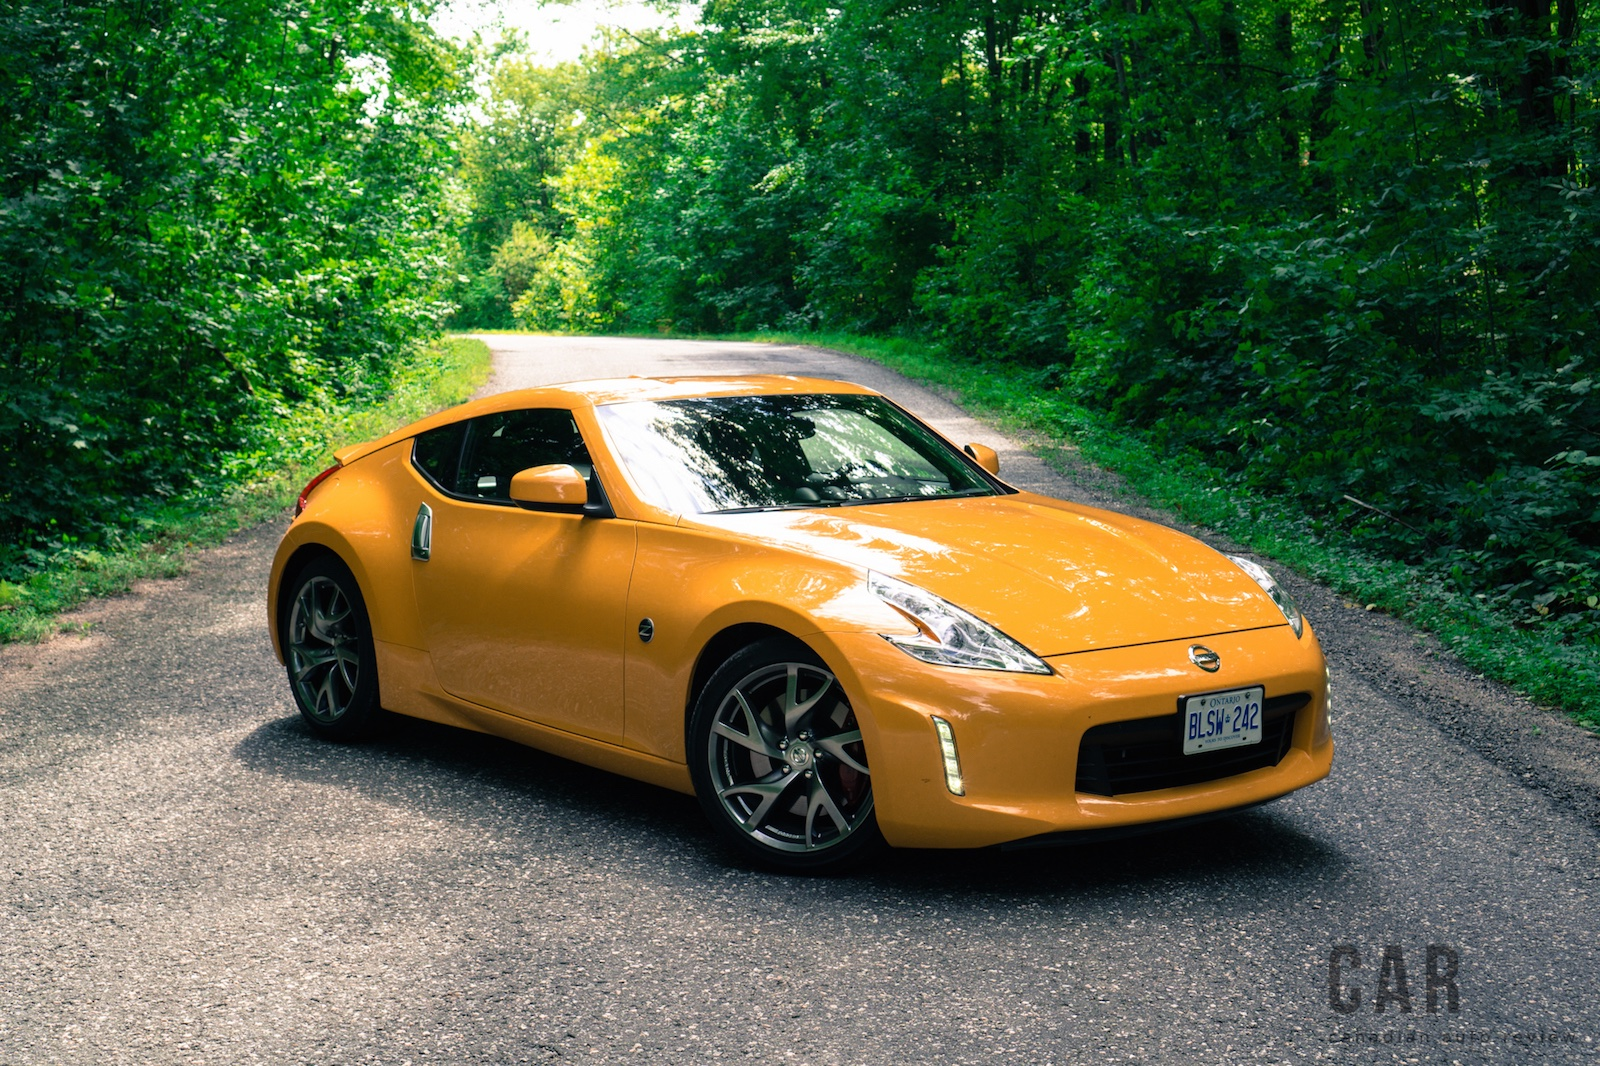 2017 Nissan 370Z Touring Sport Chicane Yellow ...